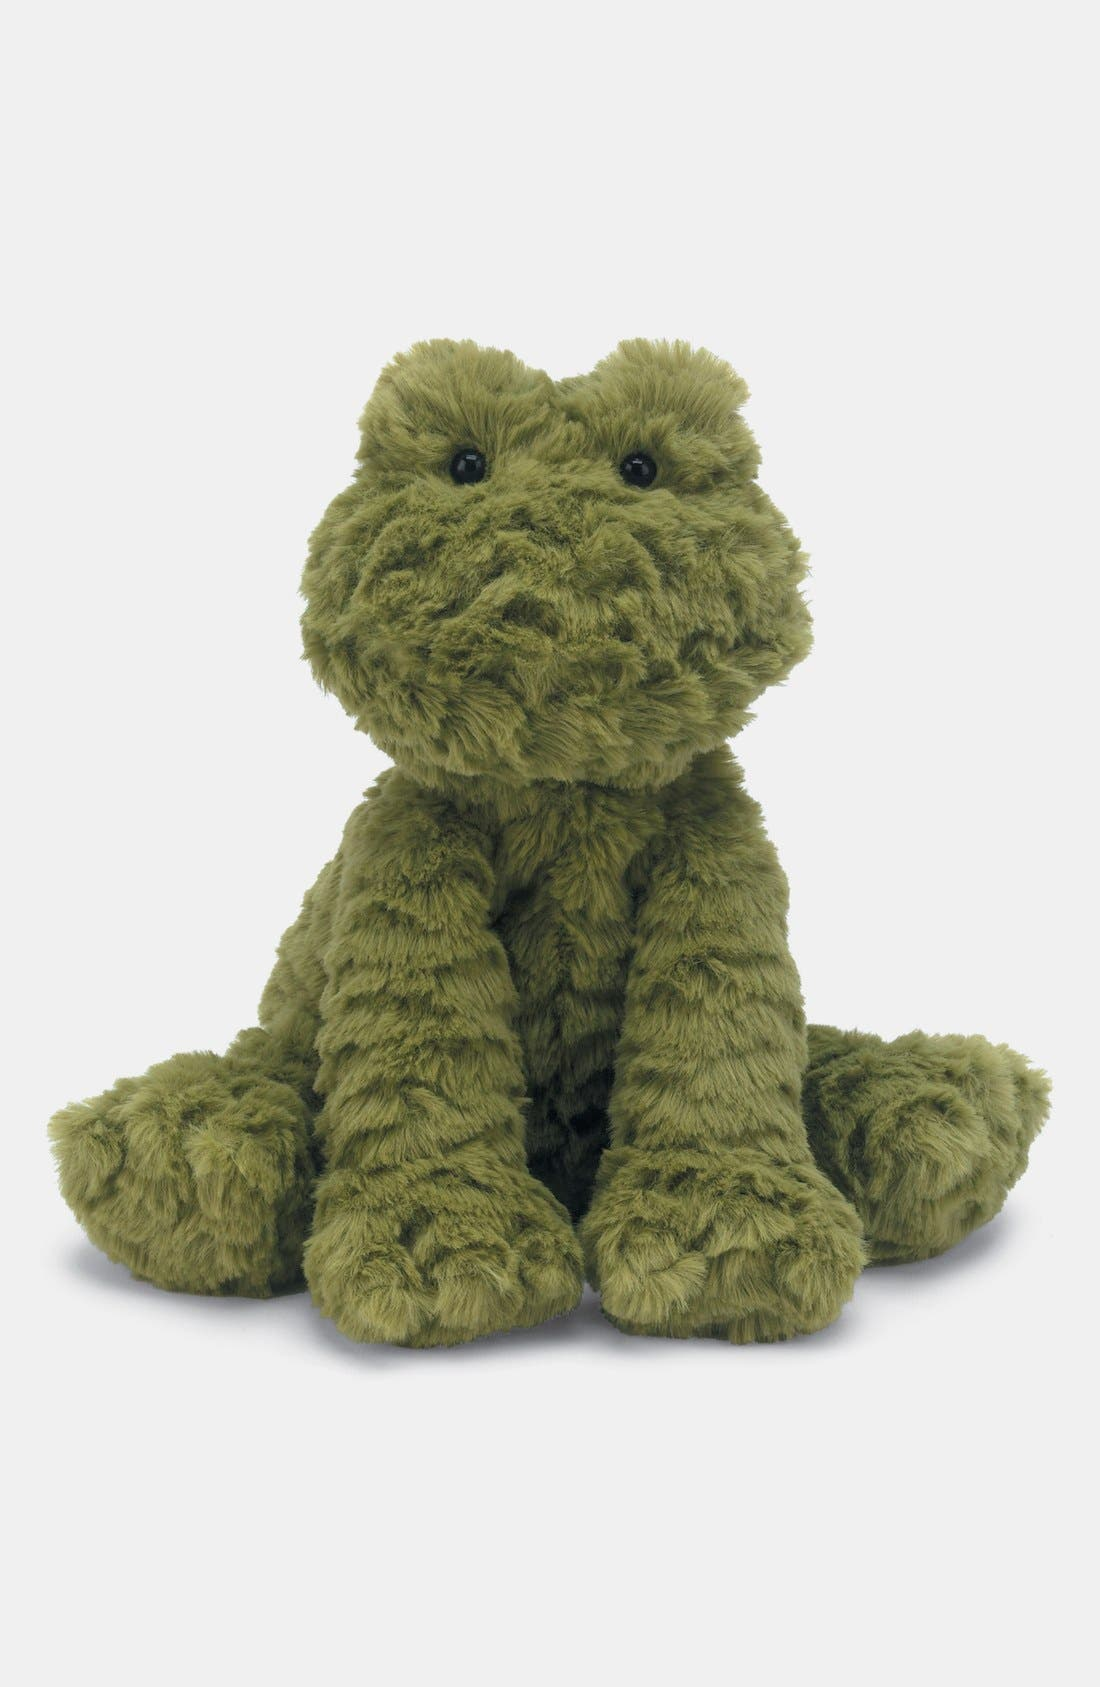 Alternate Image 1 Selected - Jellycat 'Fuddlewuddles' Frog